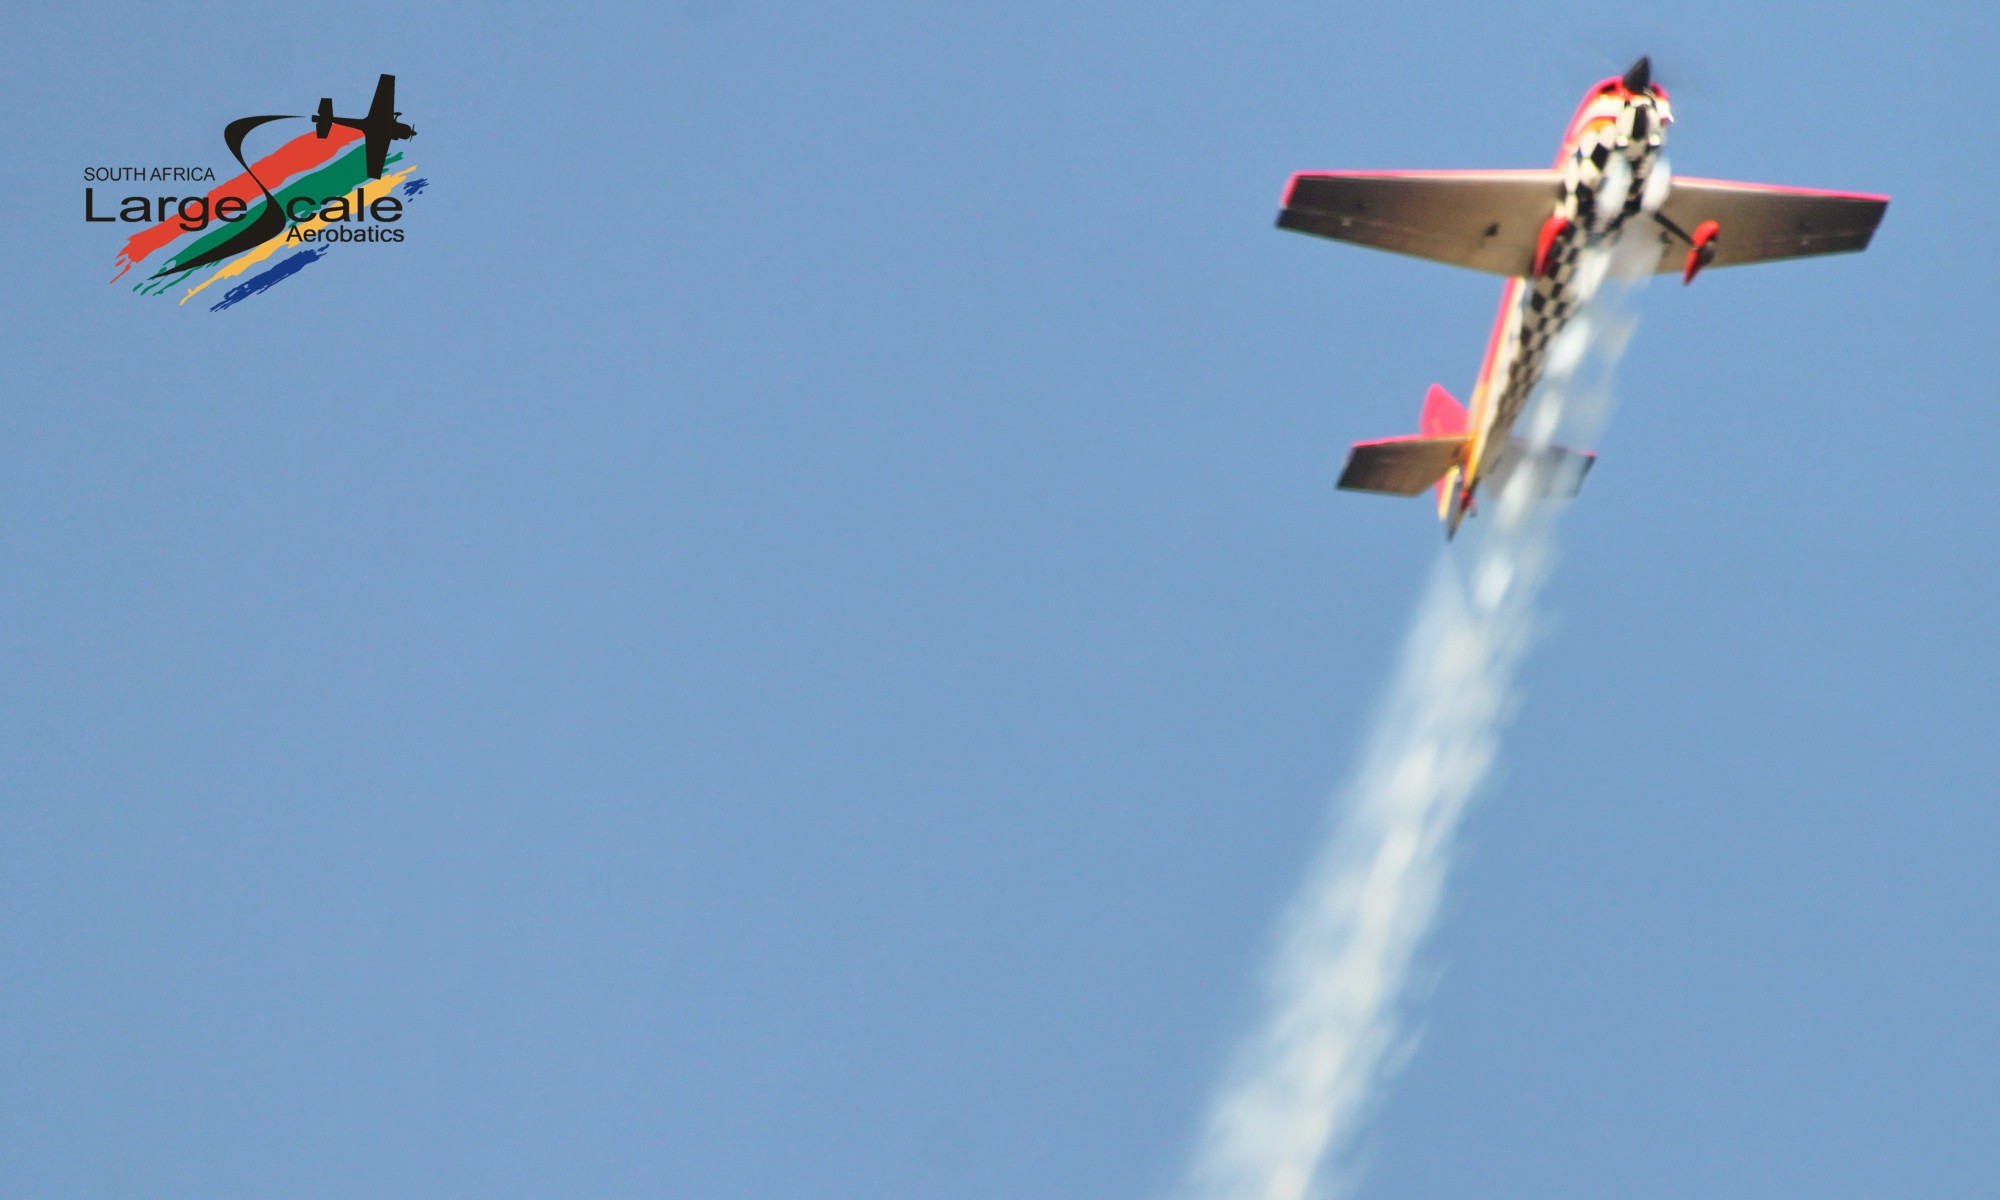 Large Scale Aerobatics South Africa